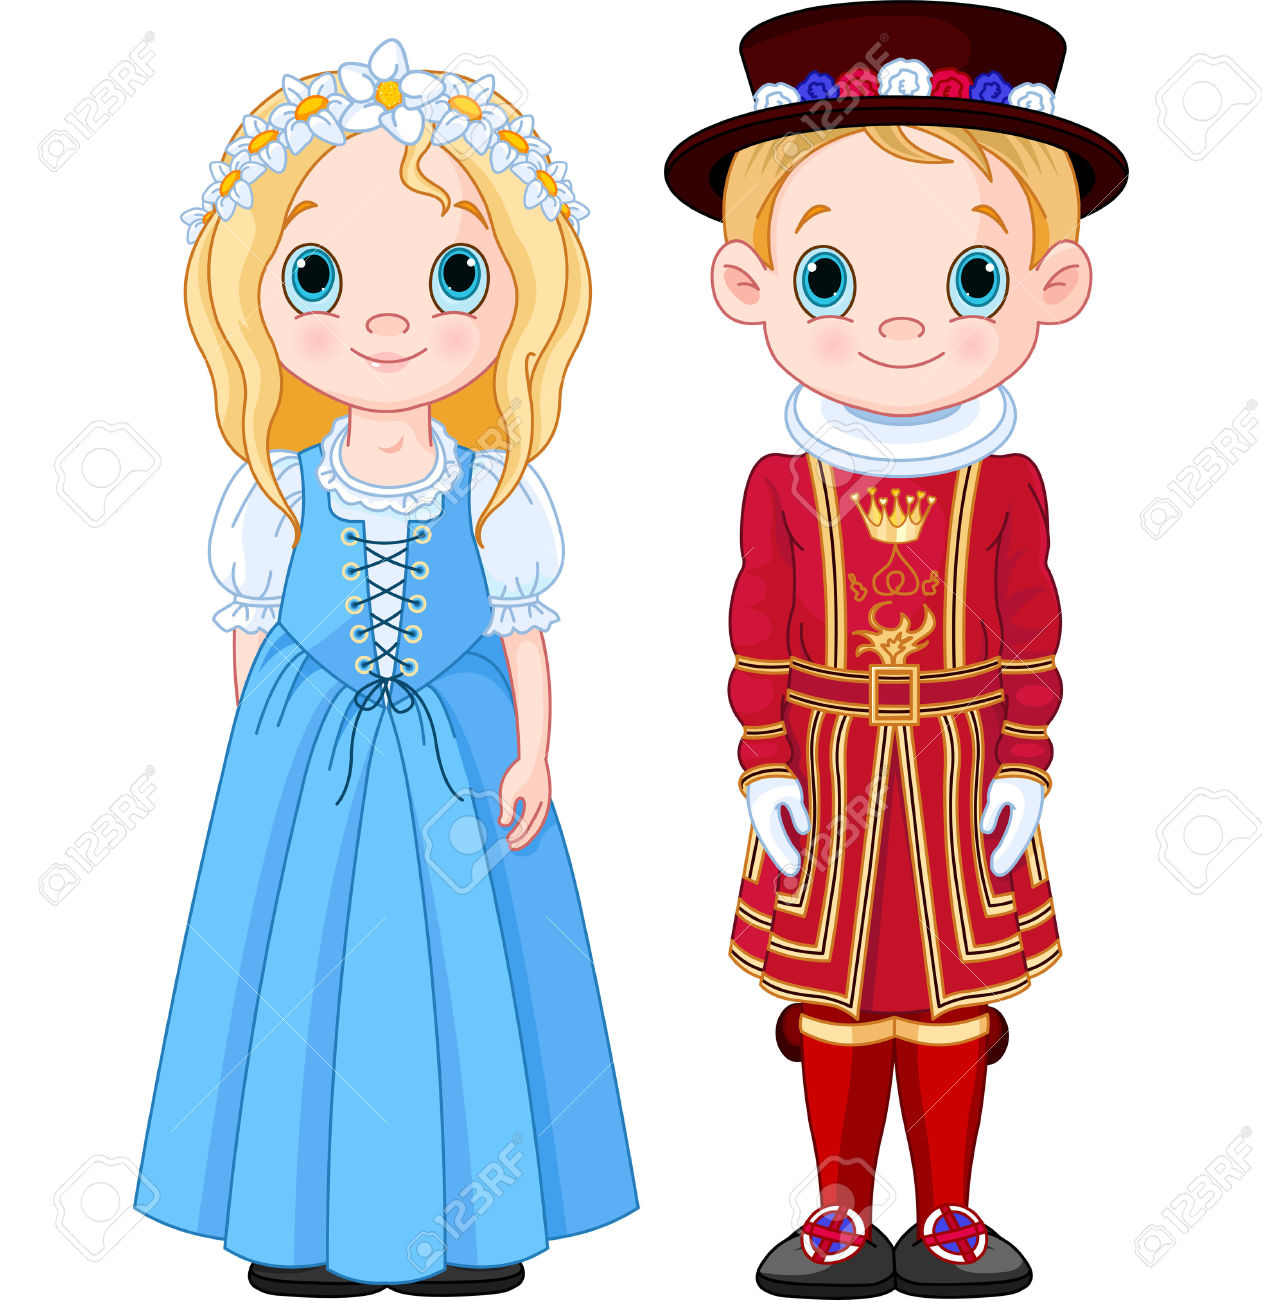 National costumes clipart.